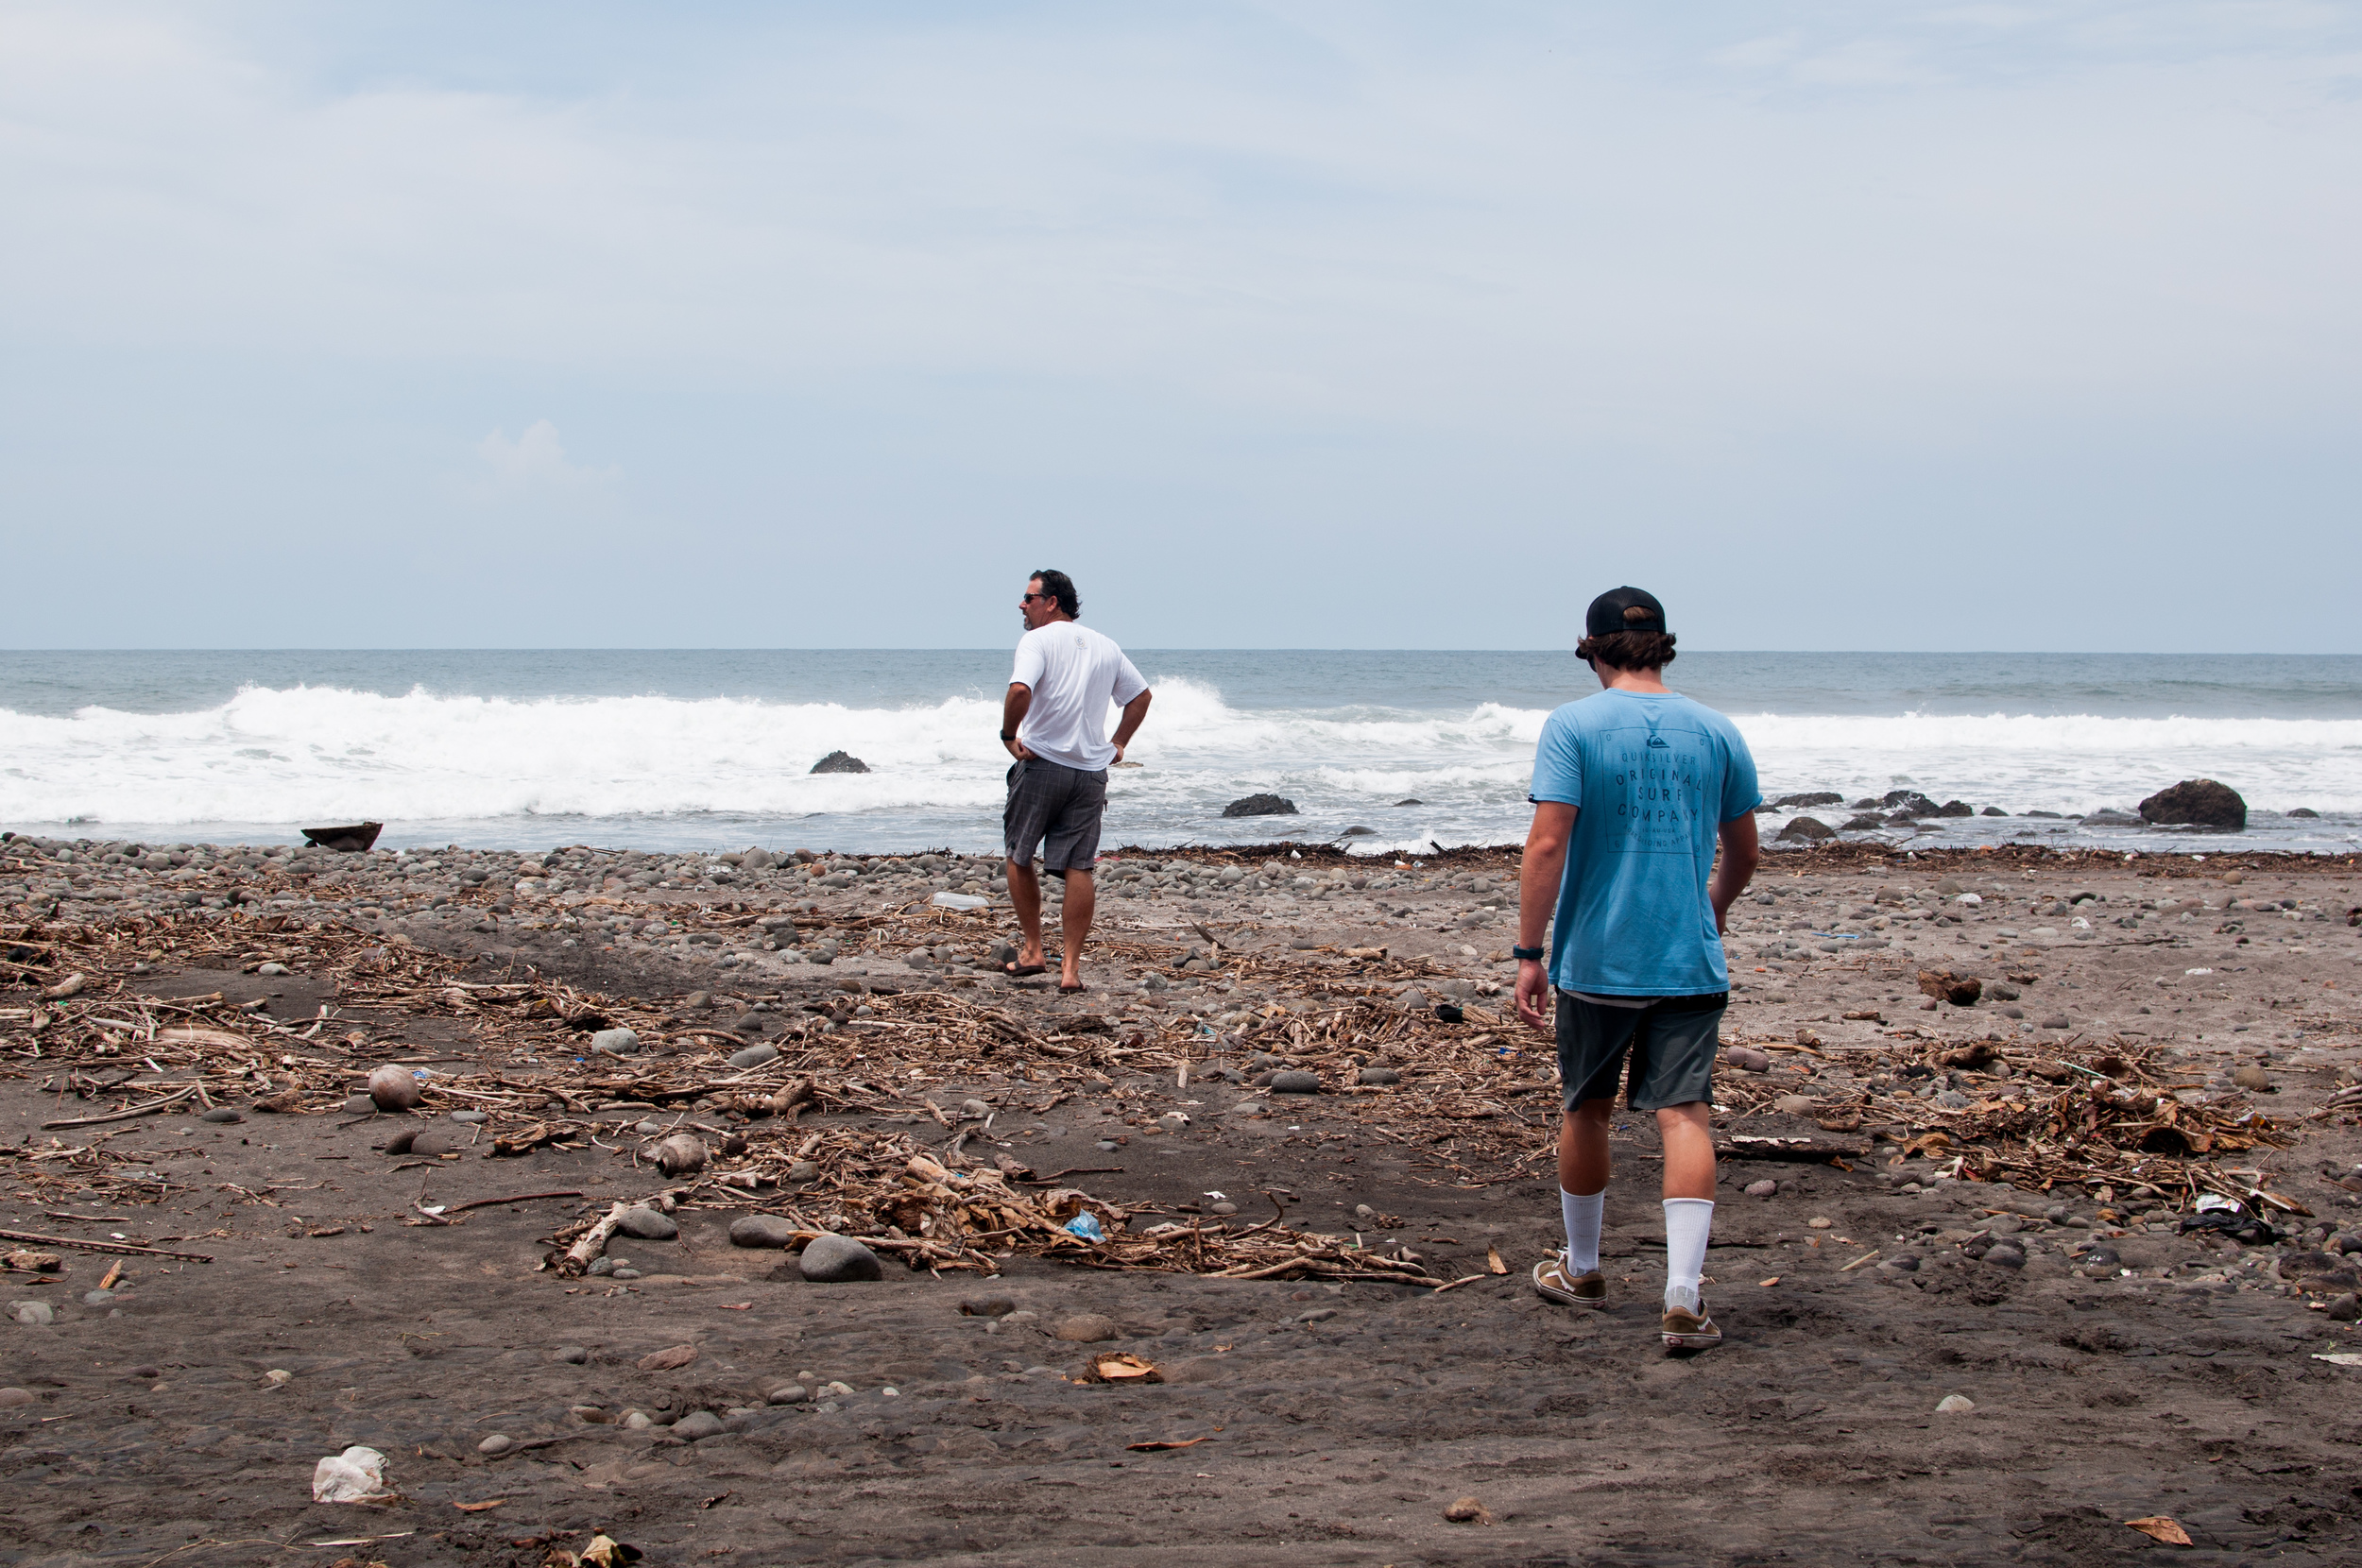 THE SURF GUIDE TOOK US TO SEE A COUPLE OTHER SPOTS, YOU COULD REALLY SEE THE POVERTY